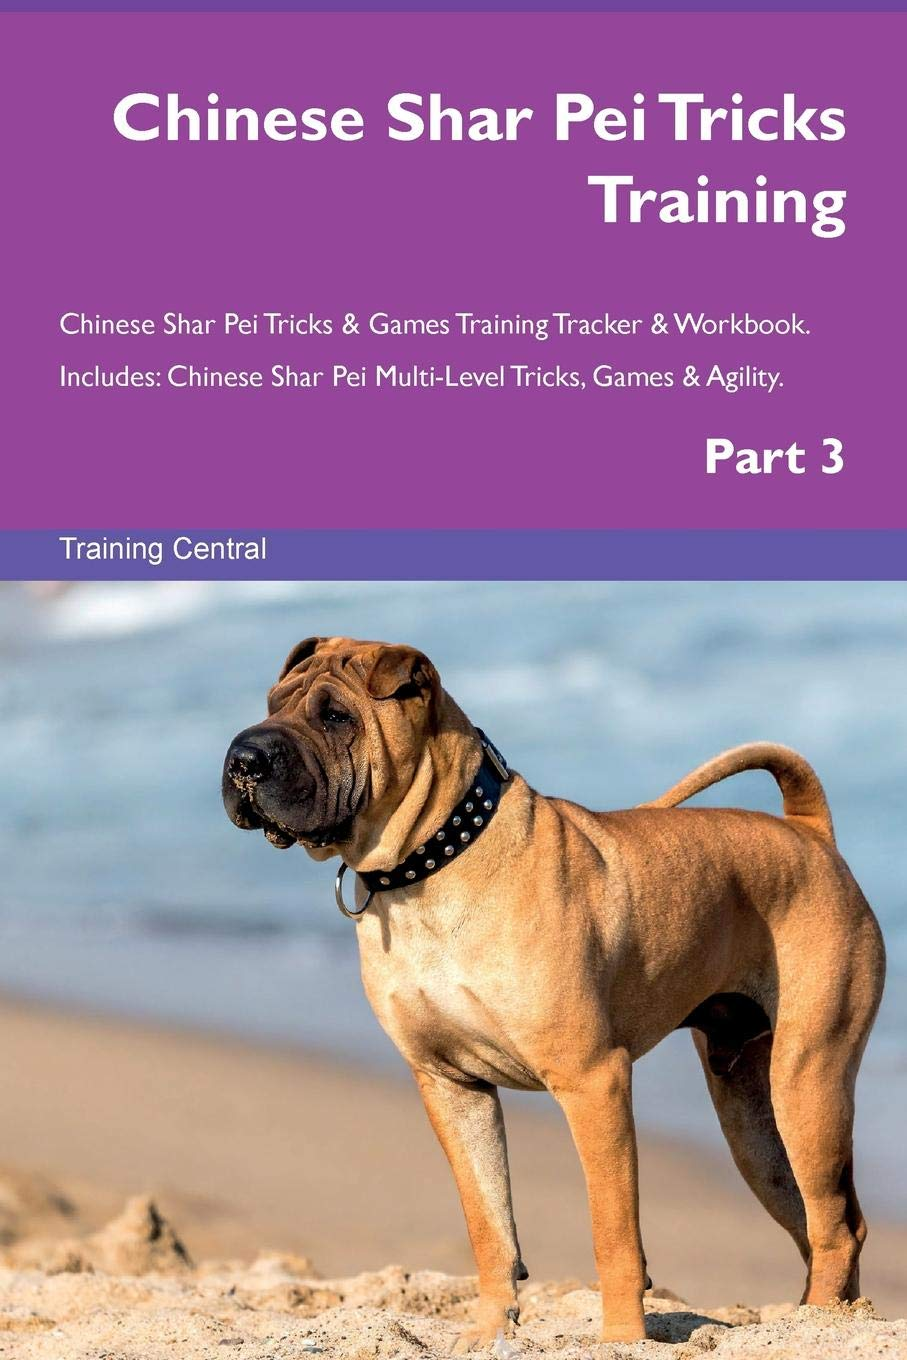 Read Online Chinese Shar Pei Tricks Training Chinese Shar Pei Tricks & Games Training Tracker & Workbook.  Includes: Chinese Shar Pei Multi-Level Tricks, Games & Agility. Part 3 PDF